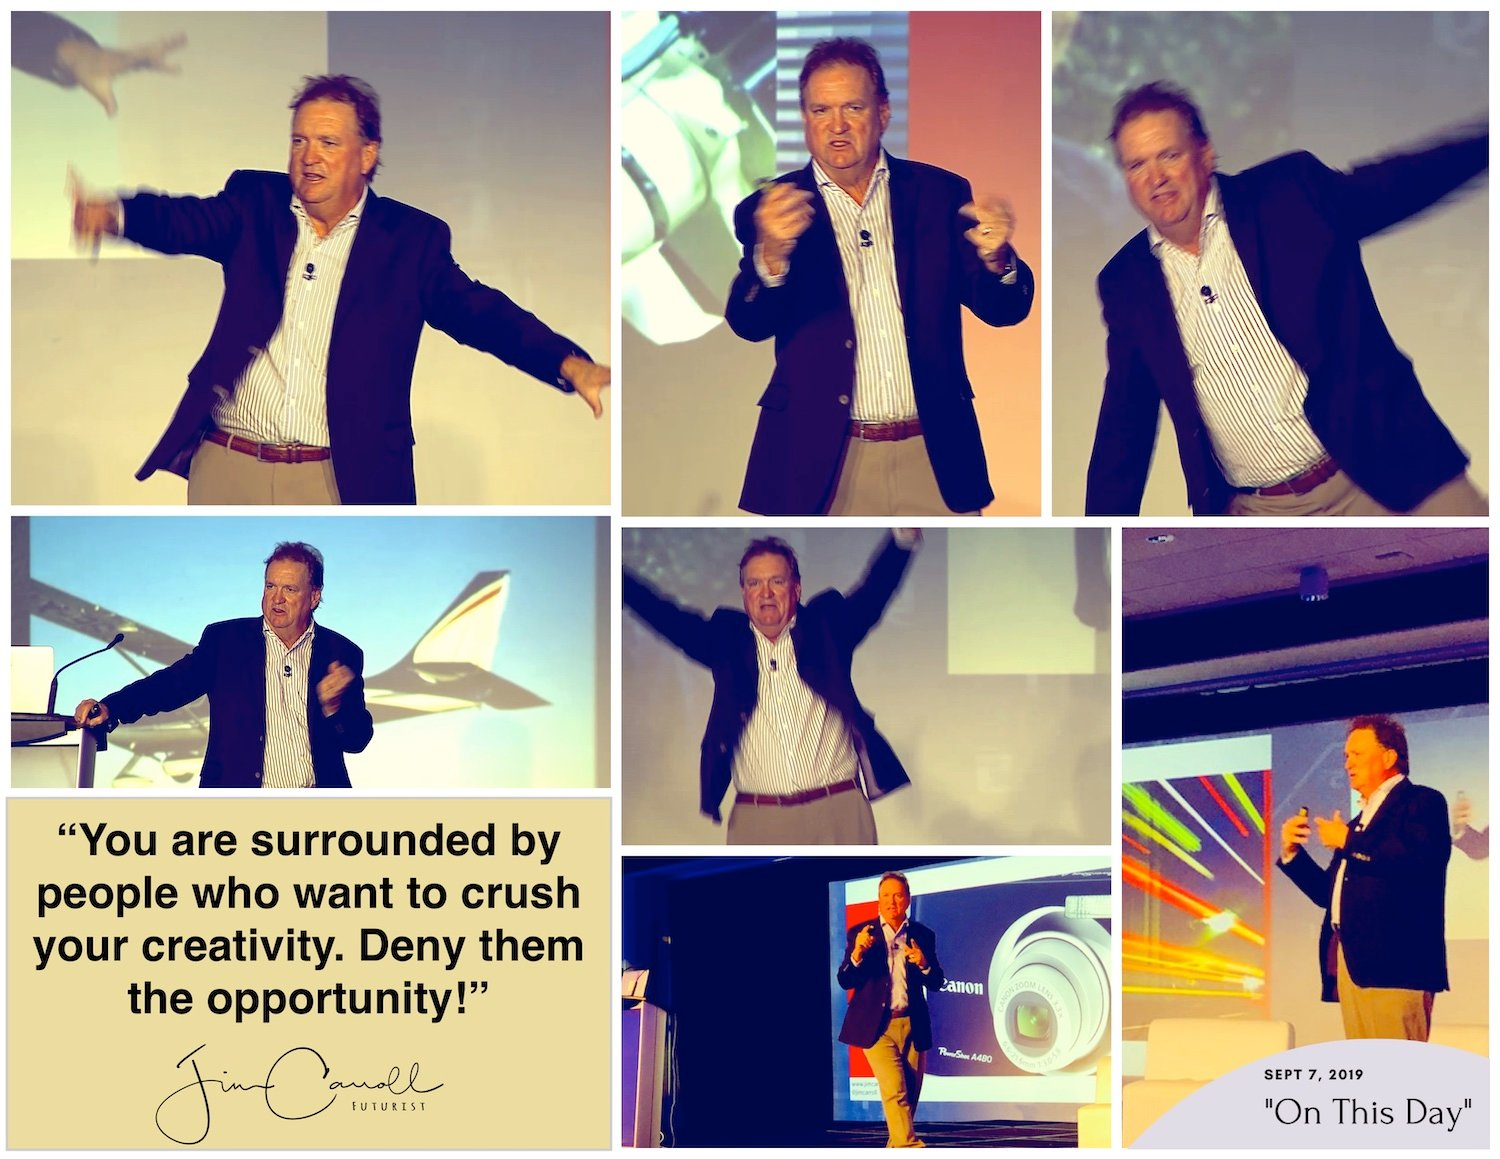 """Daily Inspiration: """"You are surrounded by people who want to crush your creativity. Deny them the  opportunity!"""""""